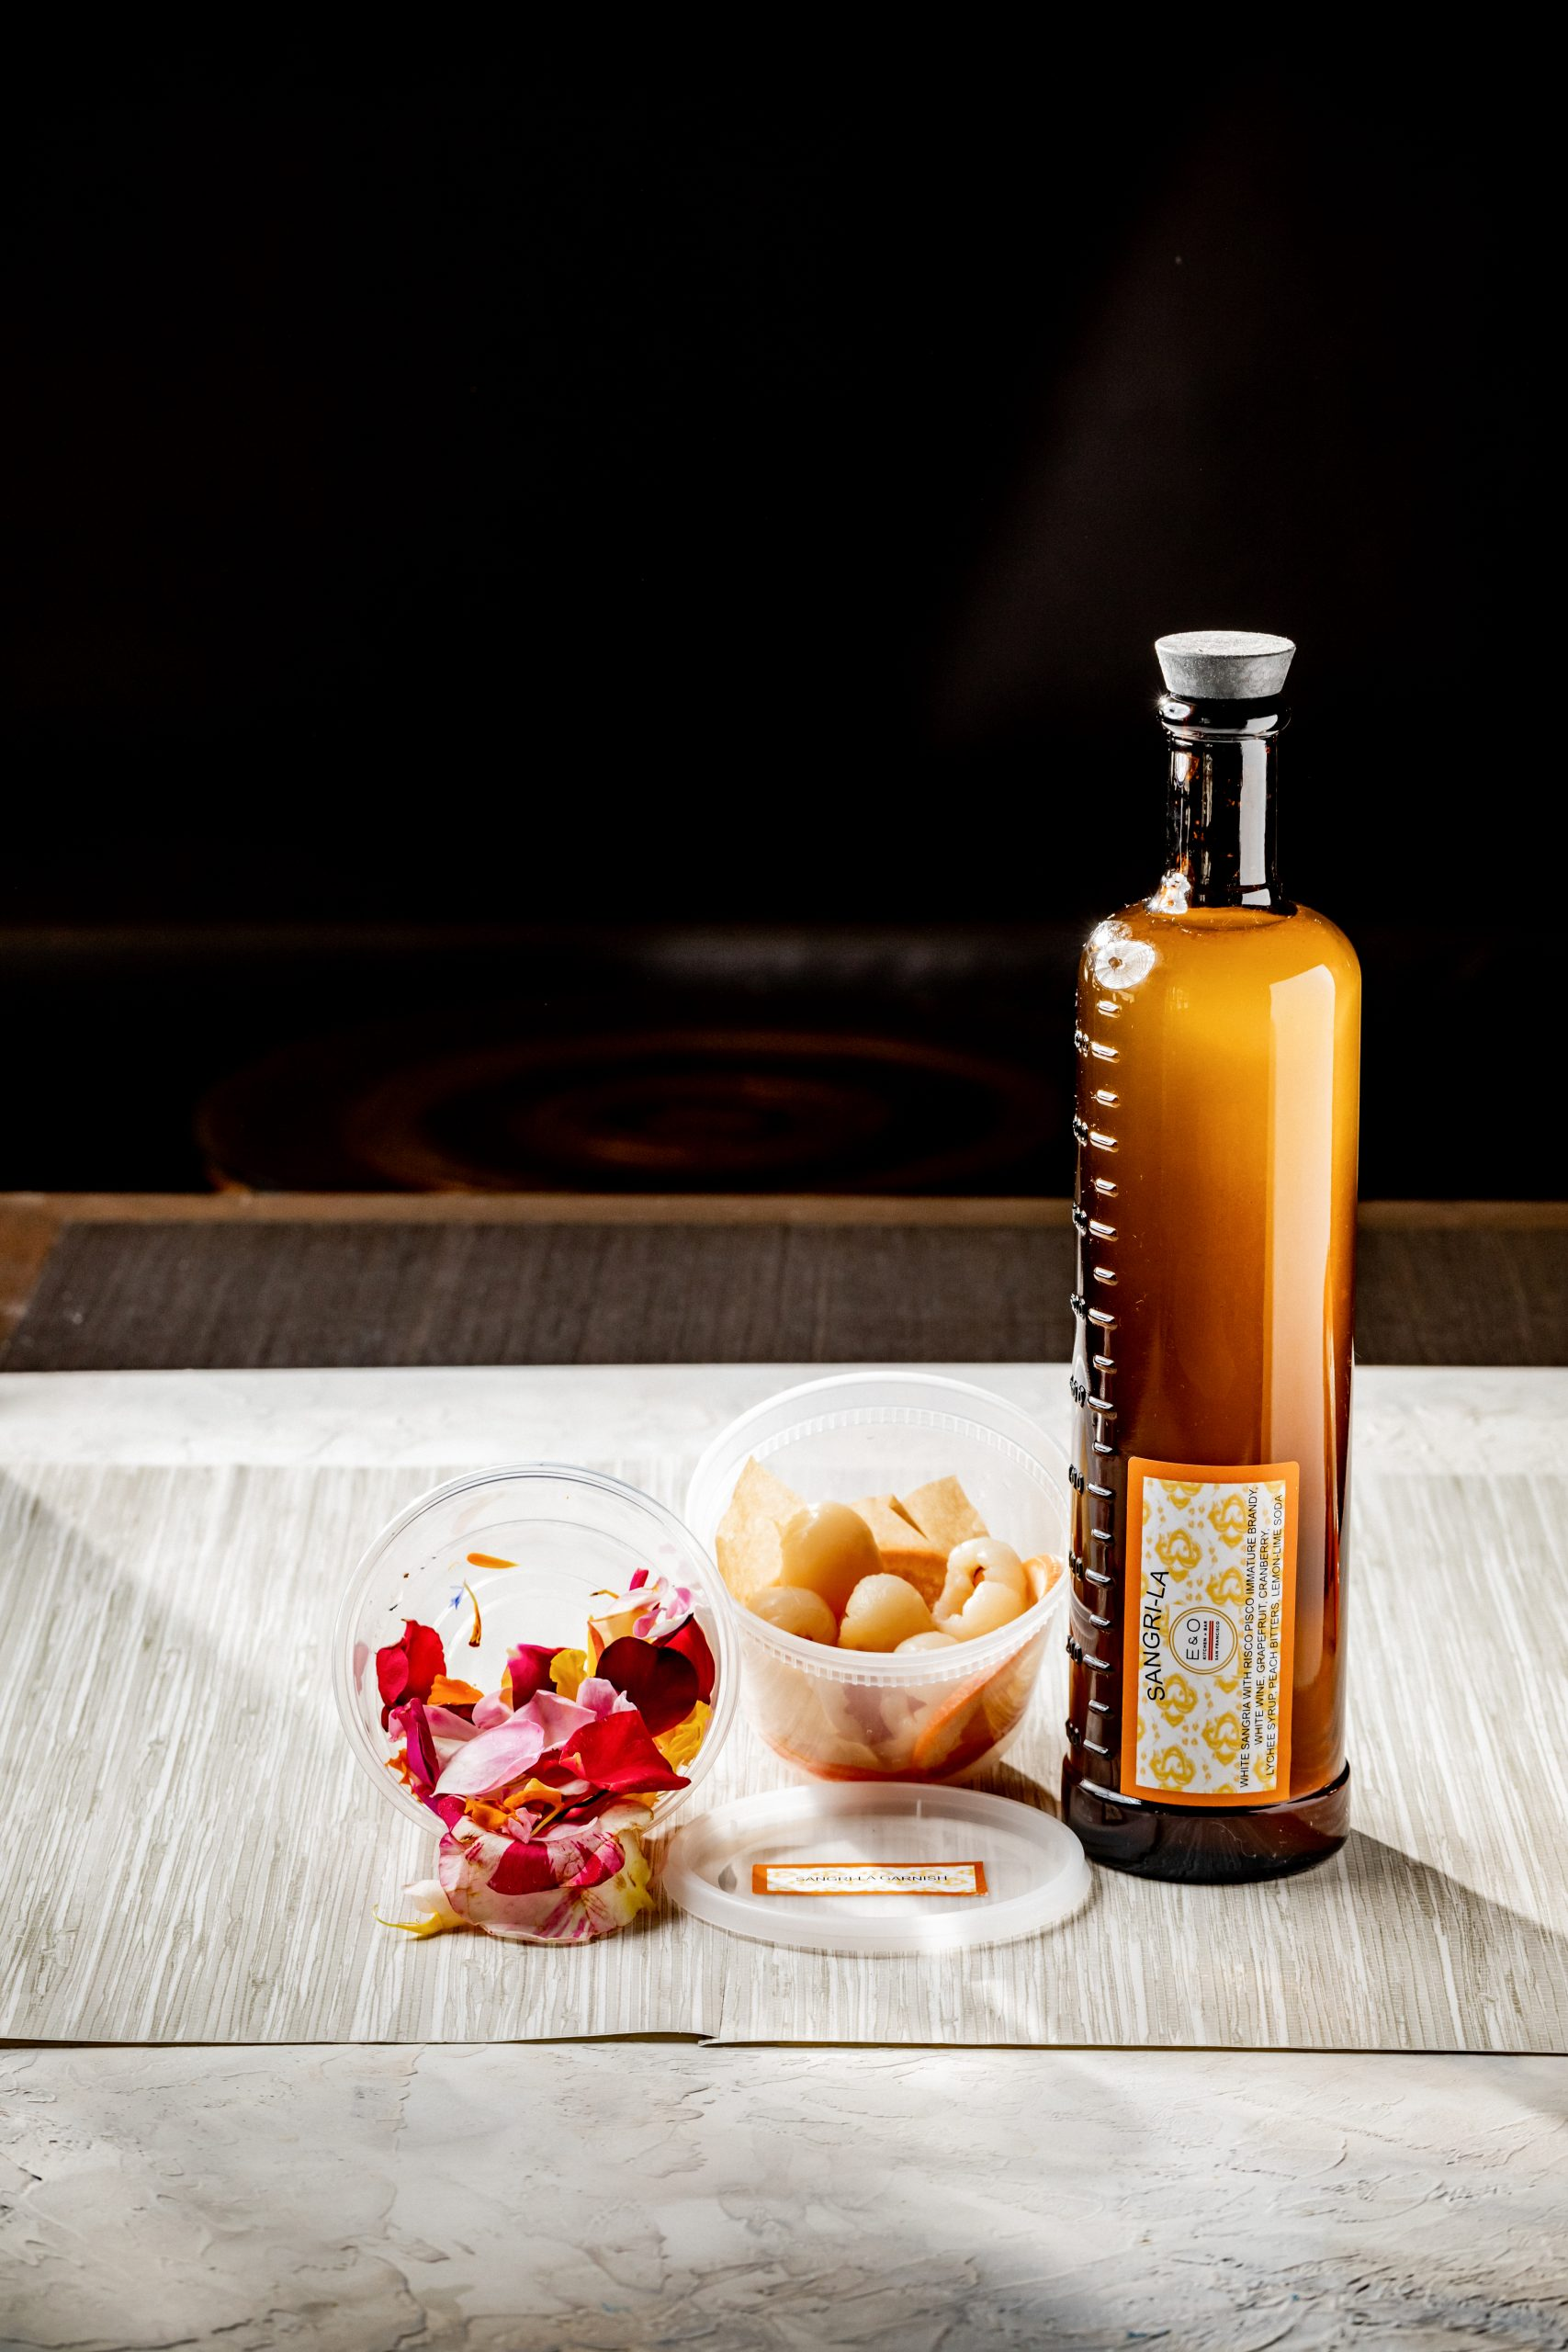 a beverage in an amber colored glass with two containers of drink garnishes to-go.